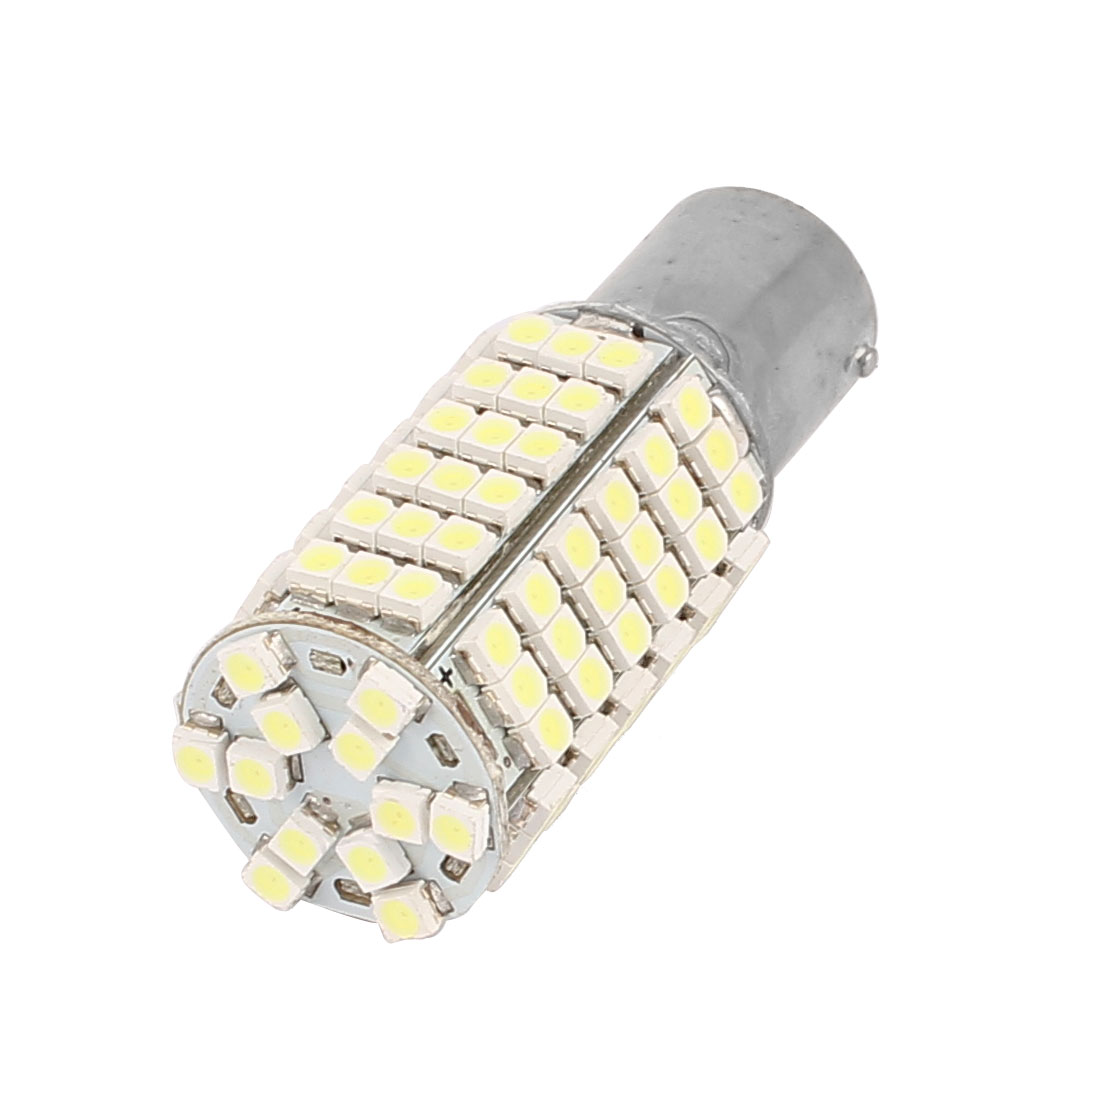 White 120-SMD 1156 1210 LED Car Rear Turn Signal Light Bulb internal